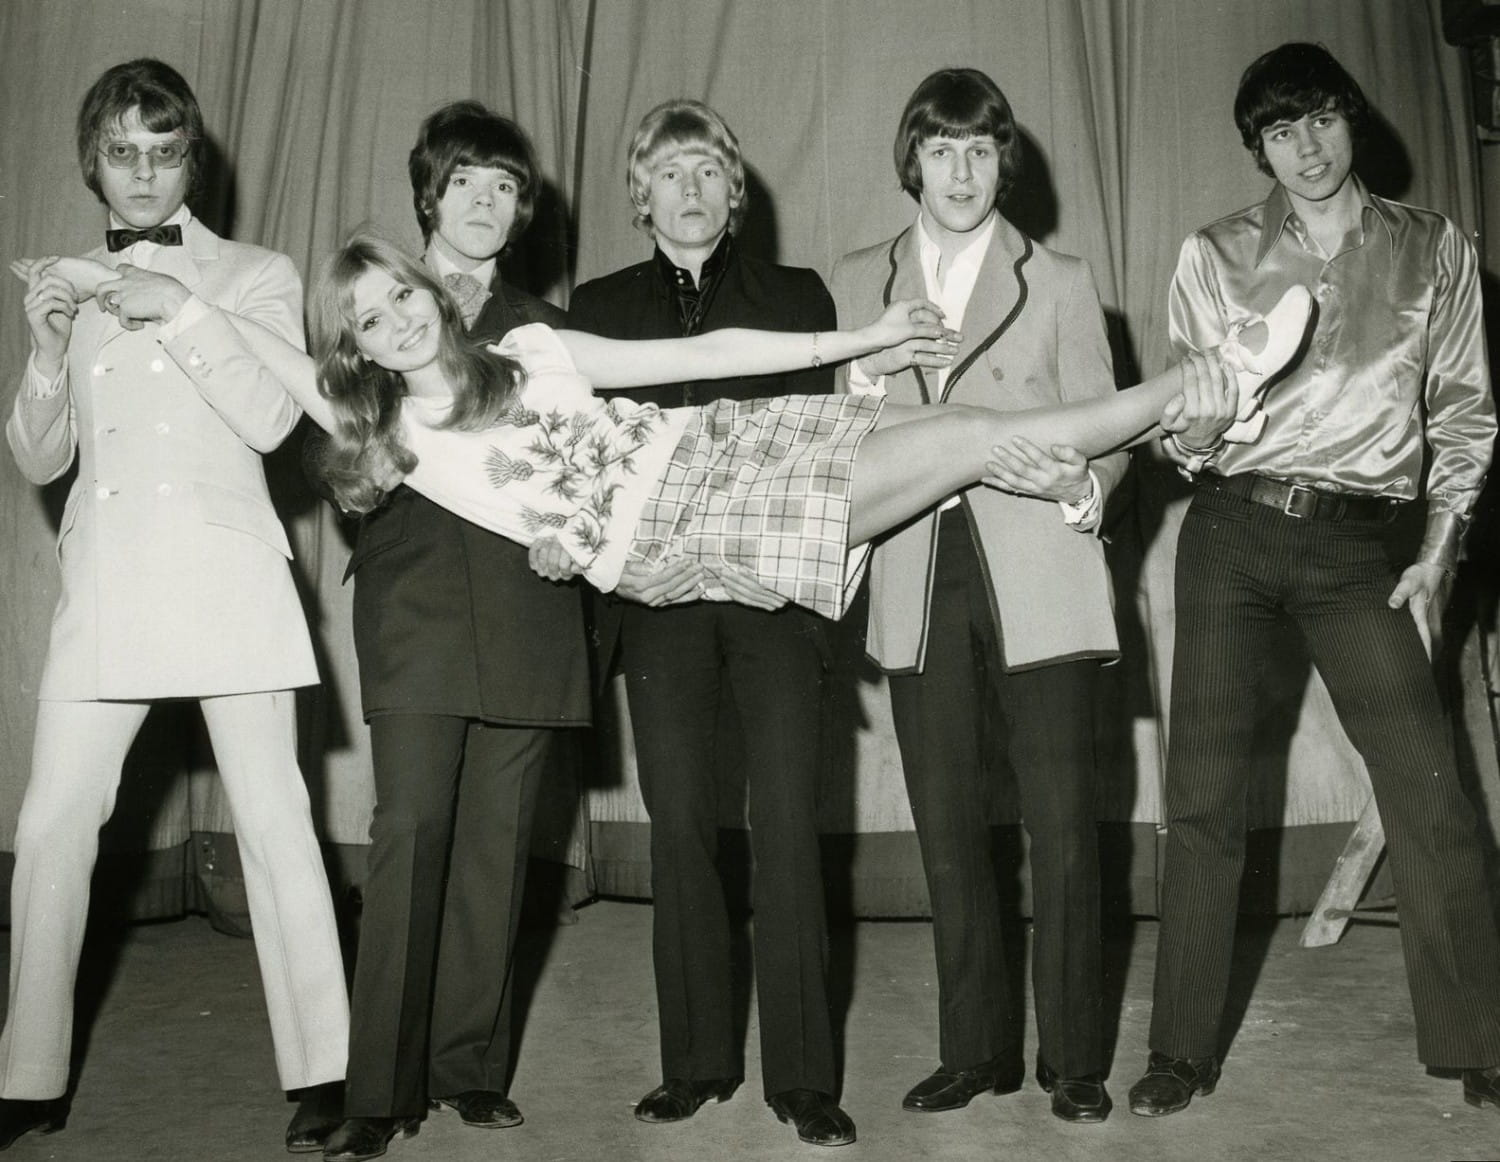 Get a bloomin' Move on! Birmingham's finest give Miss Record a lift. That's Roy Wood, later of ELO, then Wizard, second from left, and ELO drummer Bev Bevan on the far right